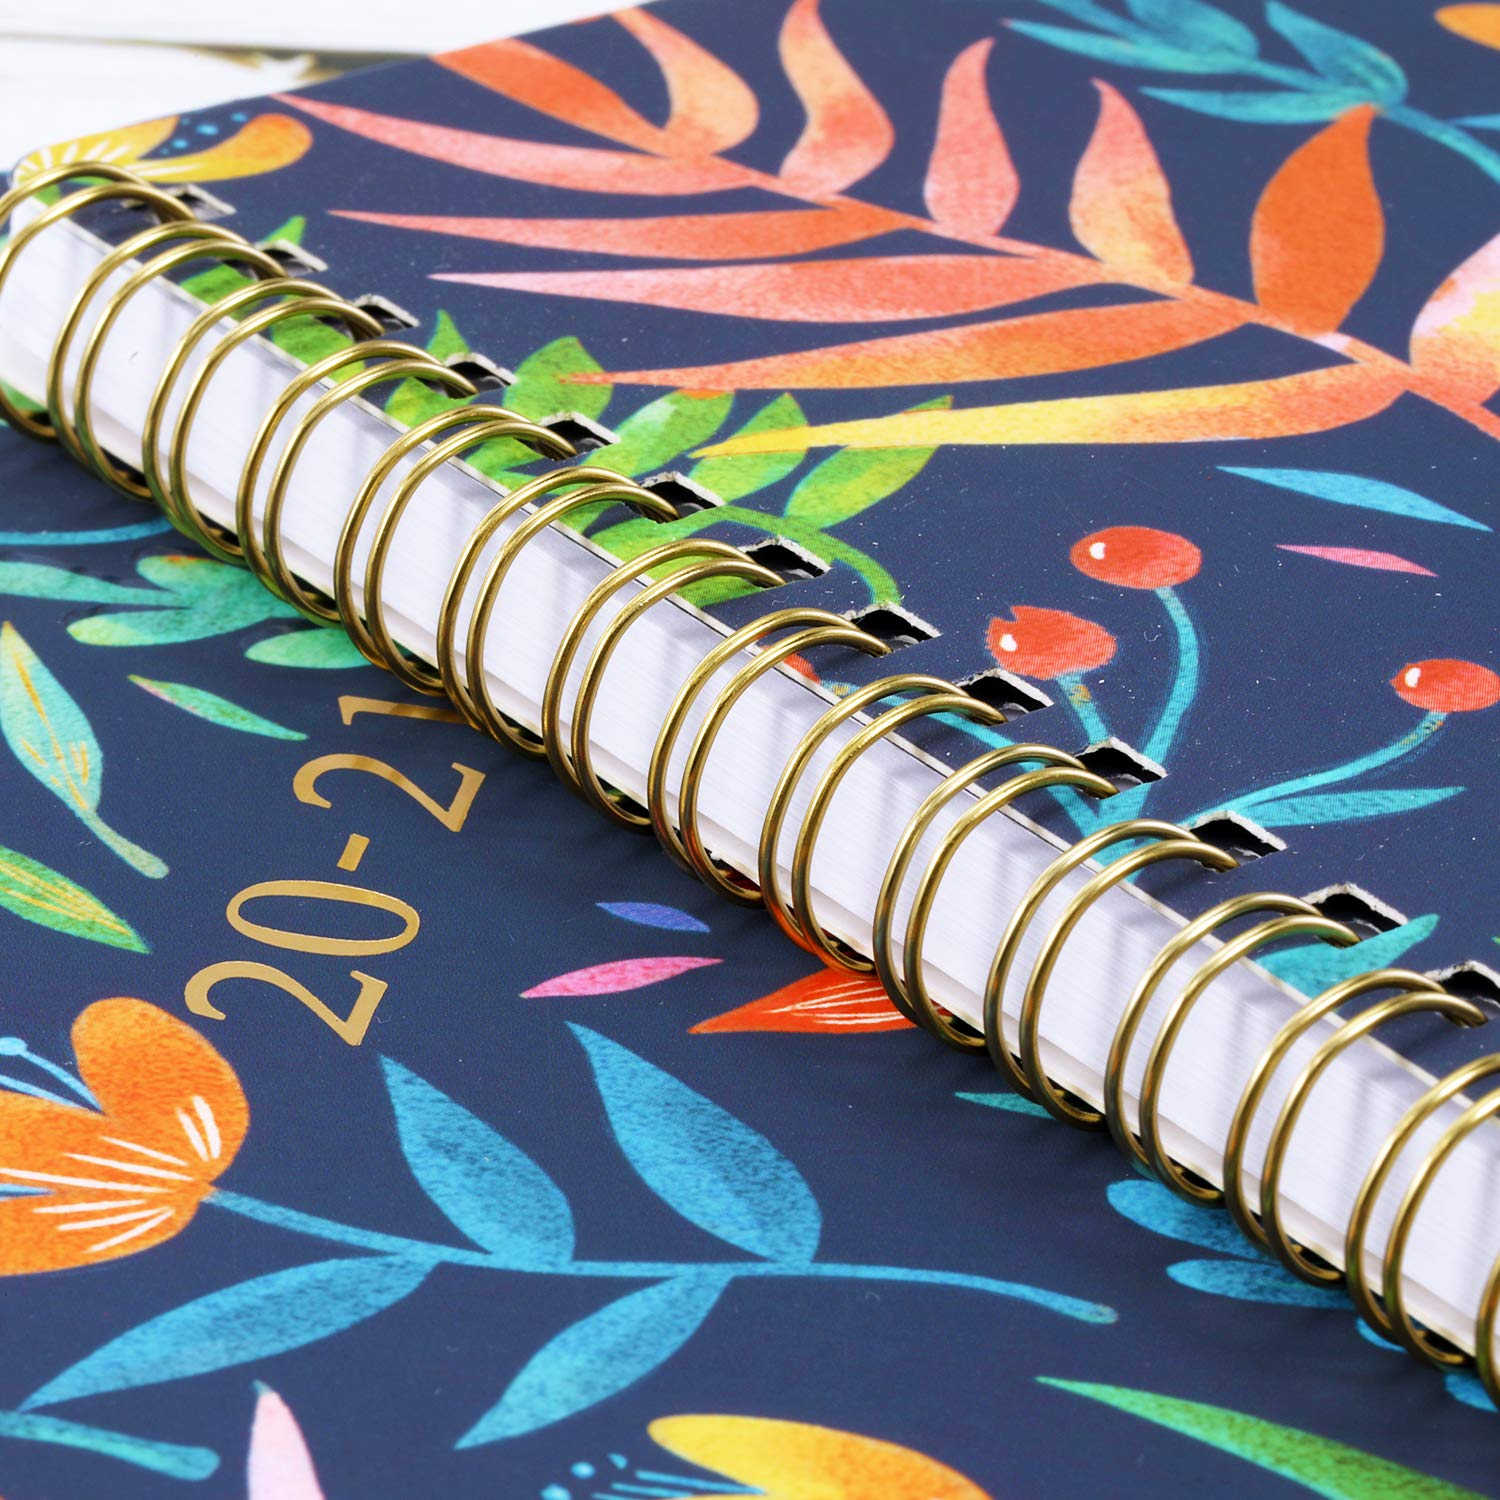 Thick Paper 2020-2021 Planner 8 x 10 Navy Floral Twin-Wire Binding Banded July 2020 June 2021 Academic Weekly /& Monthly Planner with Marked Tabs Hardcover with Back Pocket